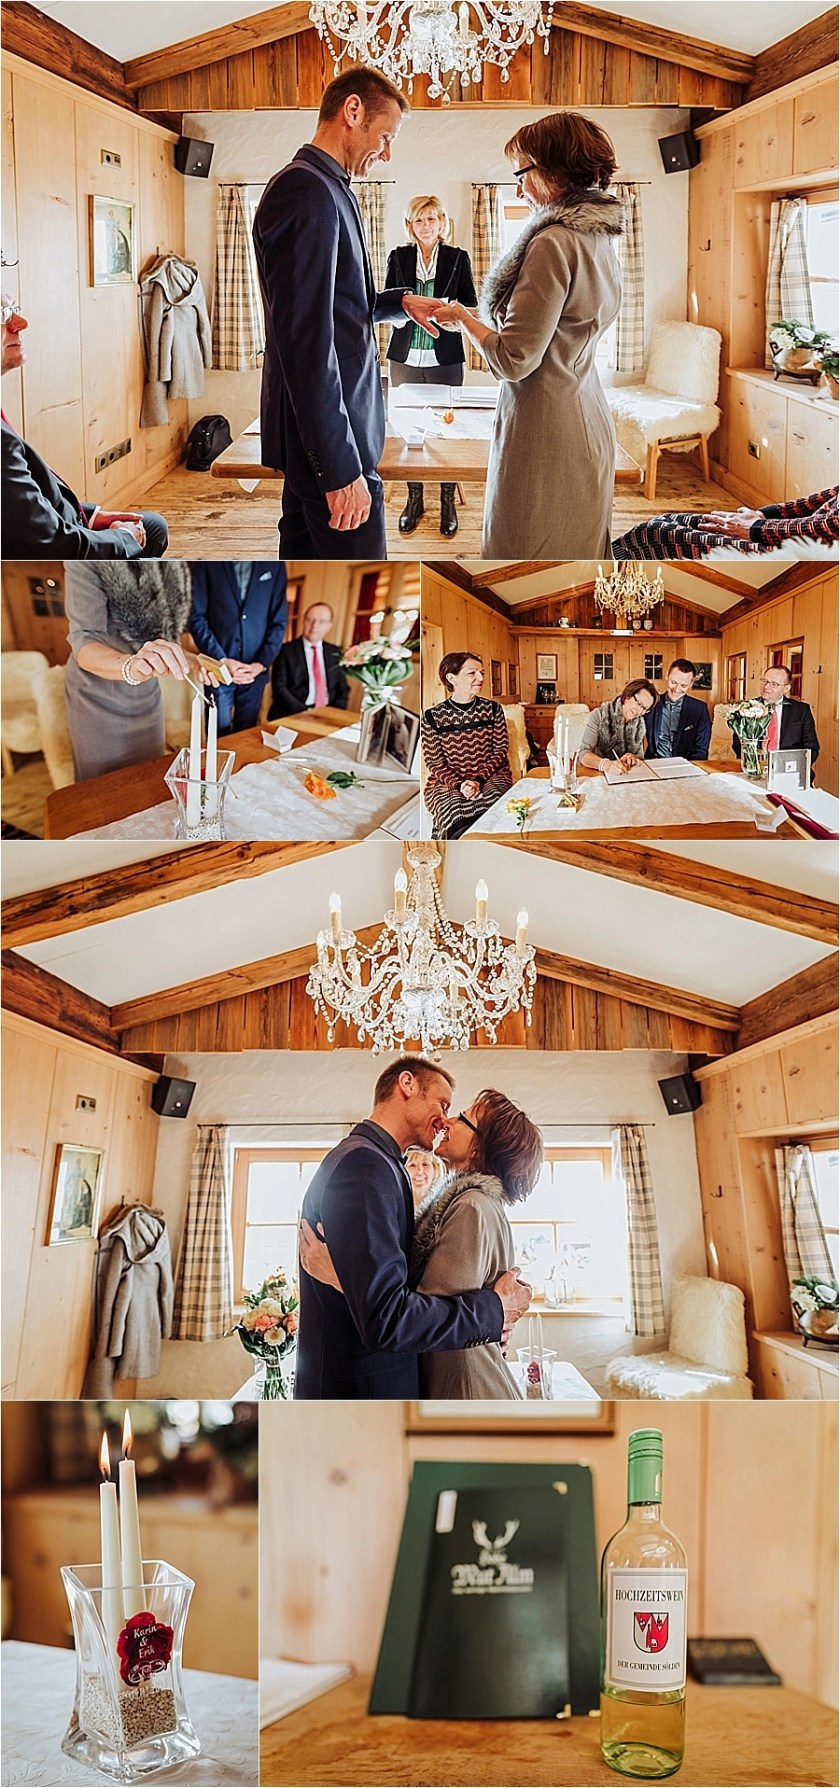 Thr bride & groom exchange rings during their mountain wedding in Austria in the Hohe Mut Alm by Wild Connections Photography